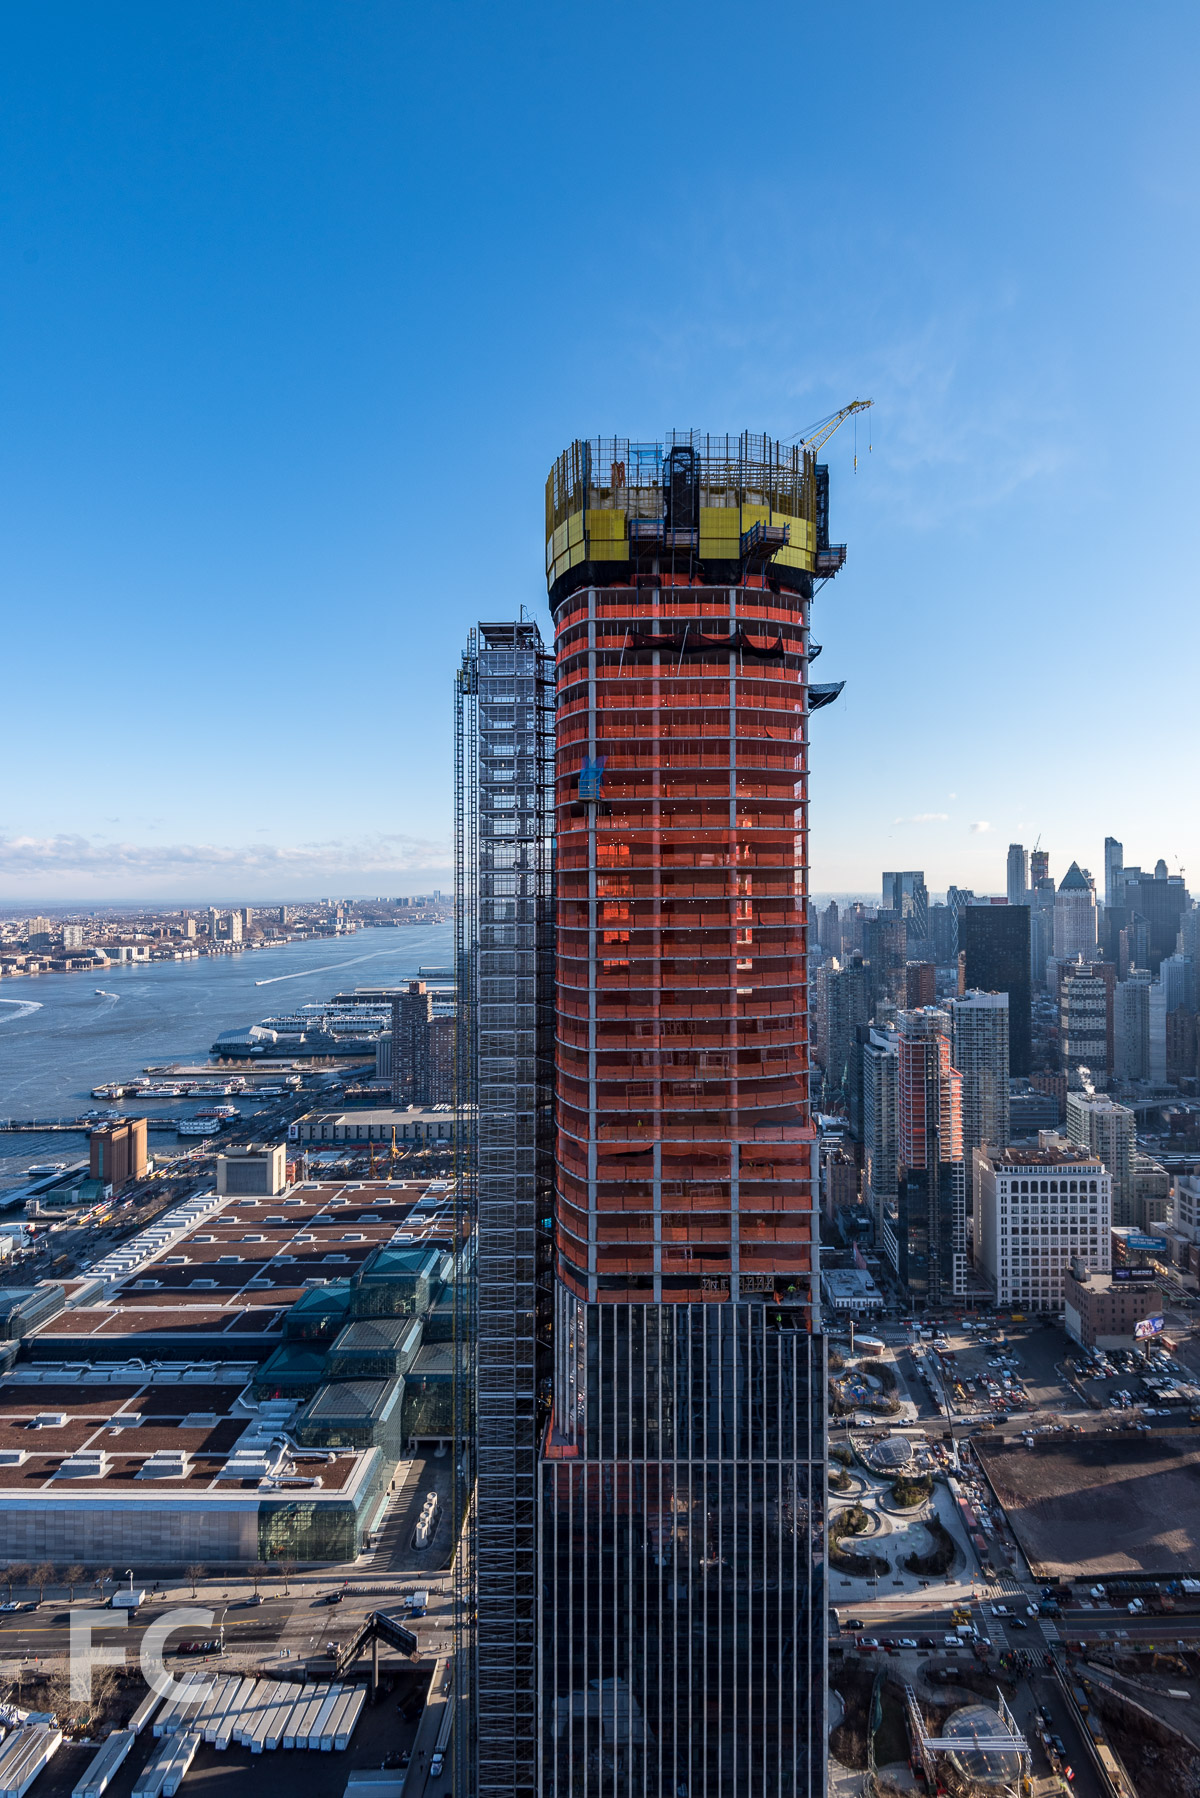 The view north towards 35 Hudson Yards from 15 Hudson Yards.